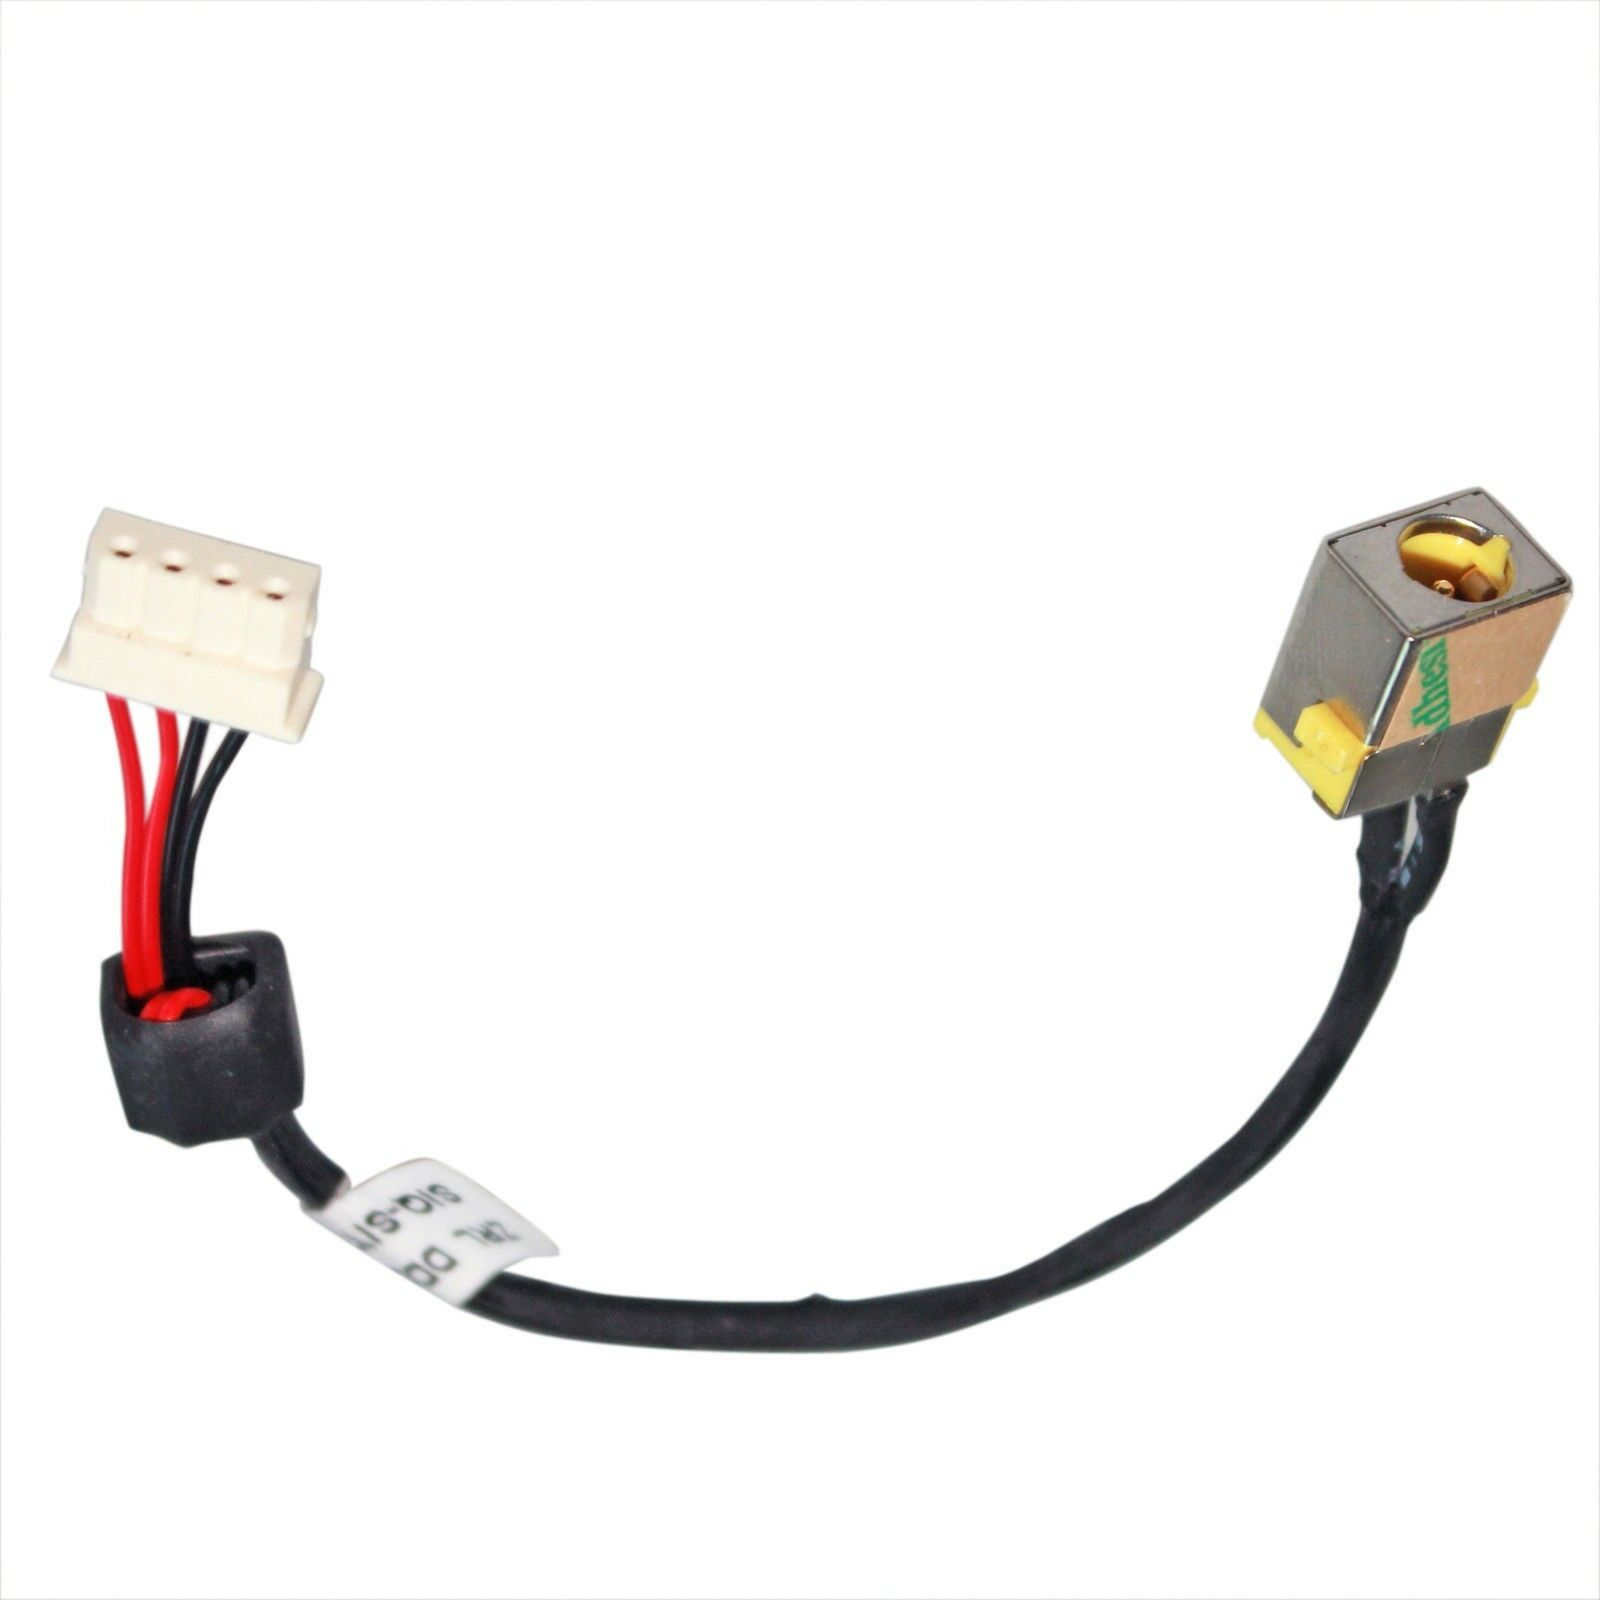 DC POWER JACK CABLE FOR Acer Aspire 5349 AS5349 5741G 5749Z-4706 Travelmate 5760